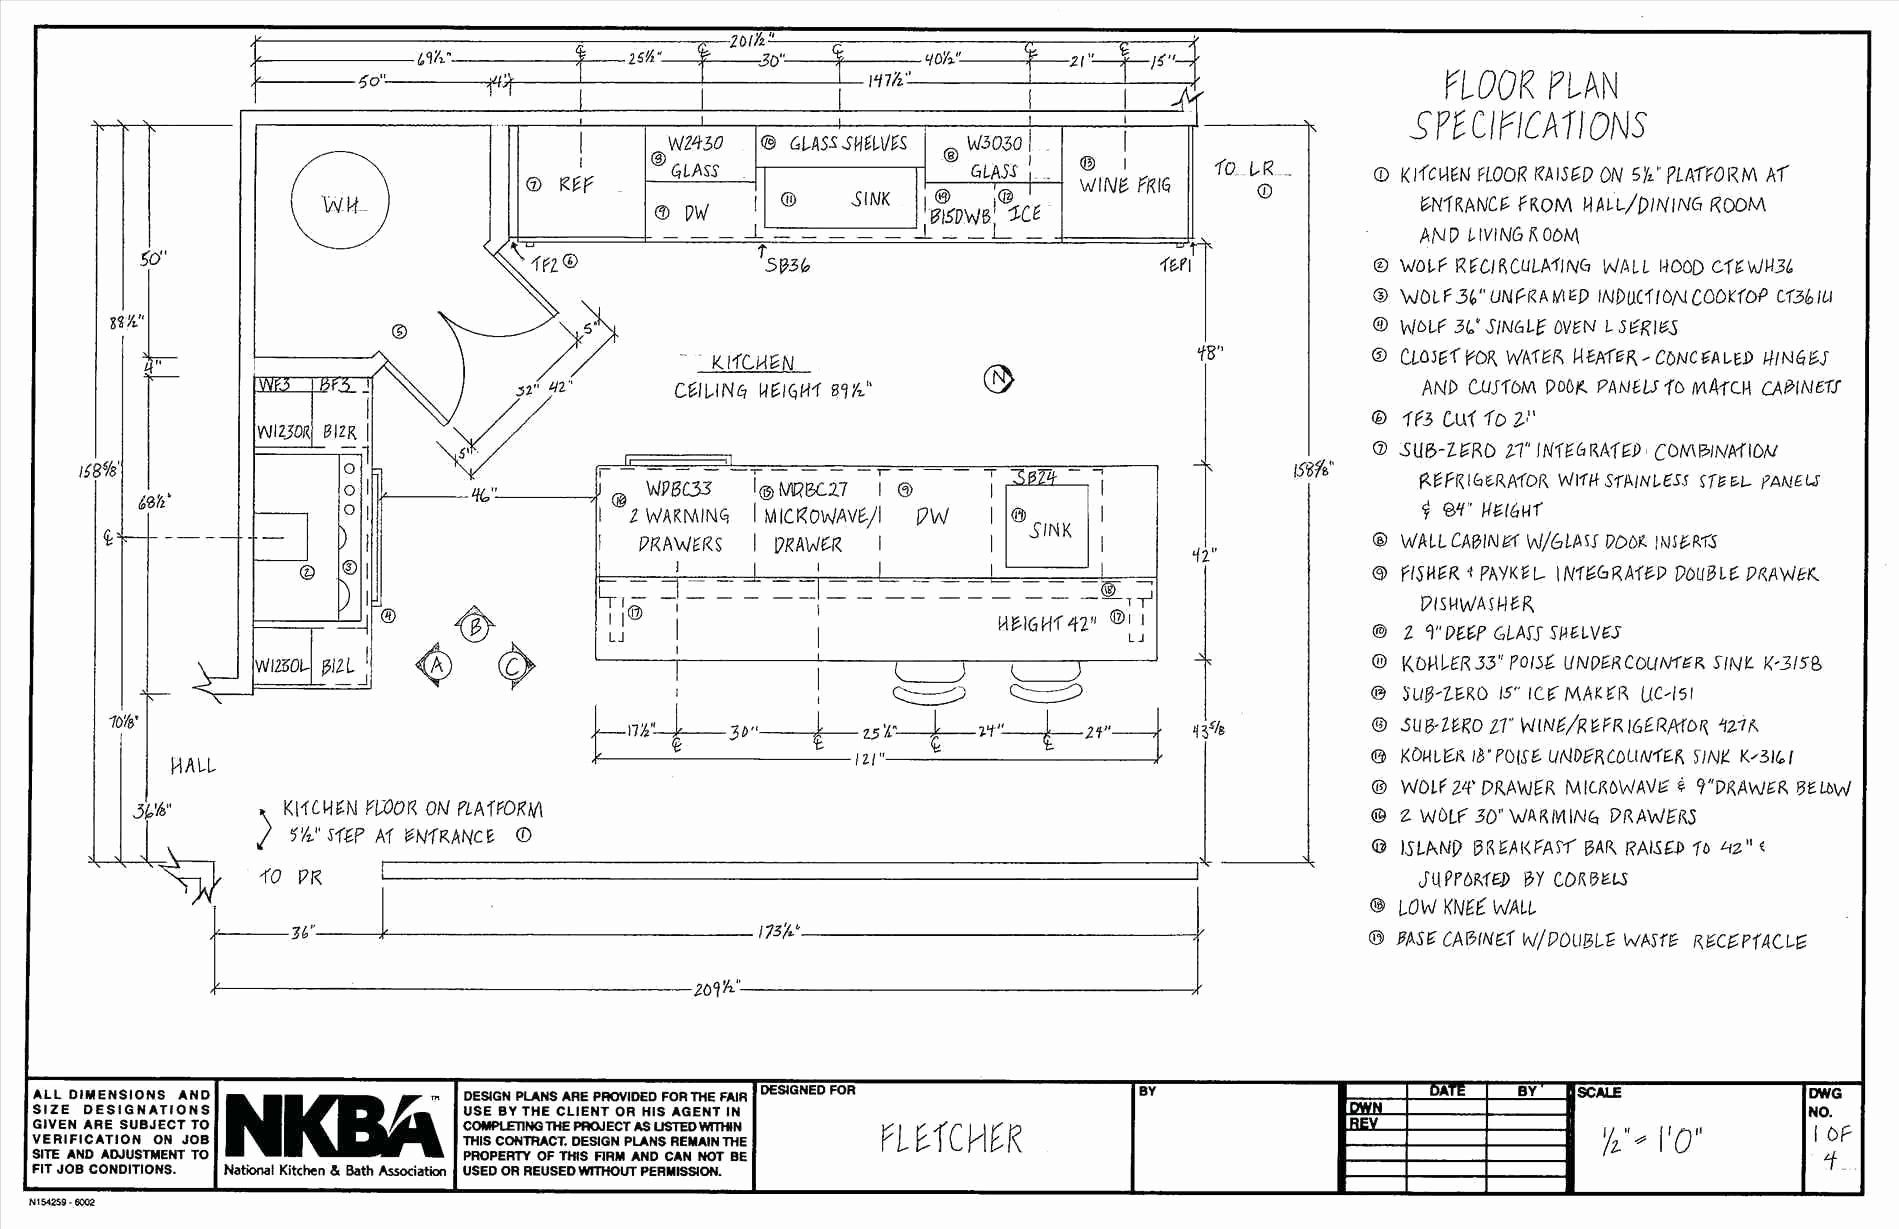 Kitchen Remodel Excel Spreadsheet If You Manage A Team Employee Or Busy Household It Is Simp In 2020 Kitchen Layout Plans Kitchen Floor Plans Kitchen Designs Layout